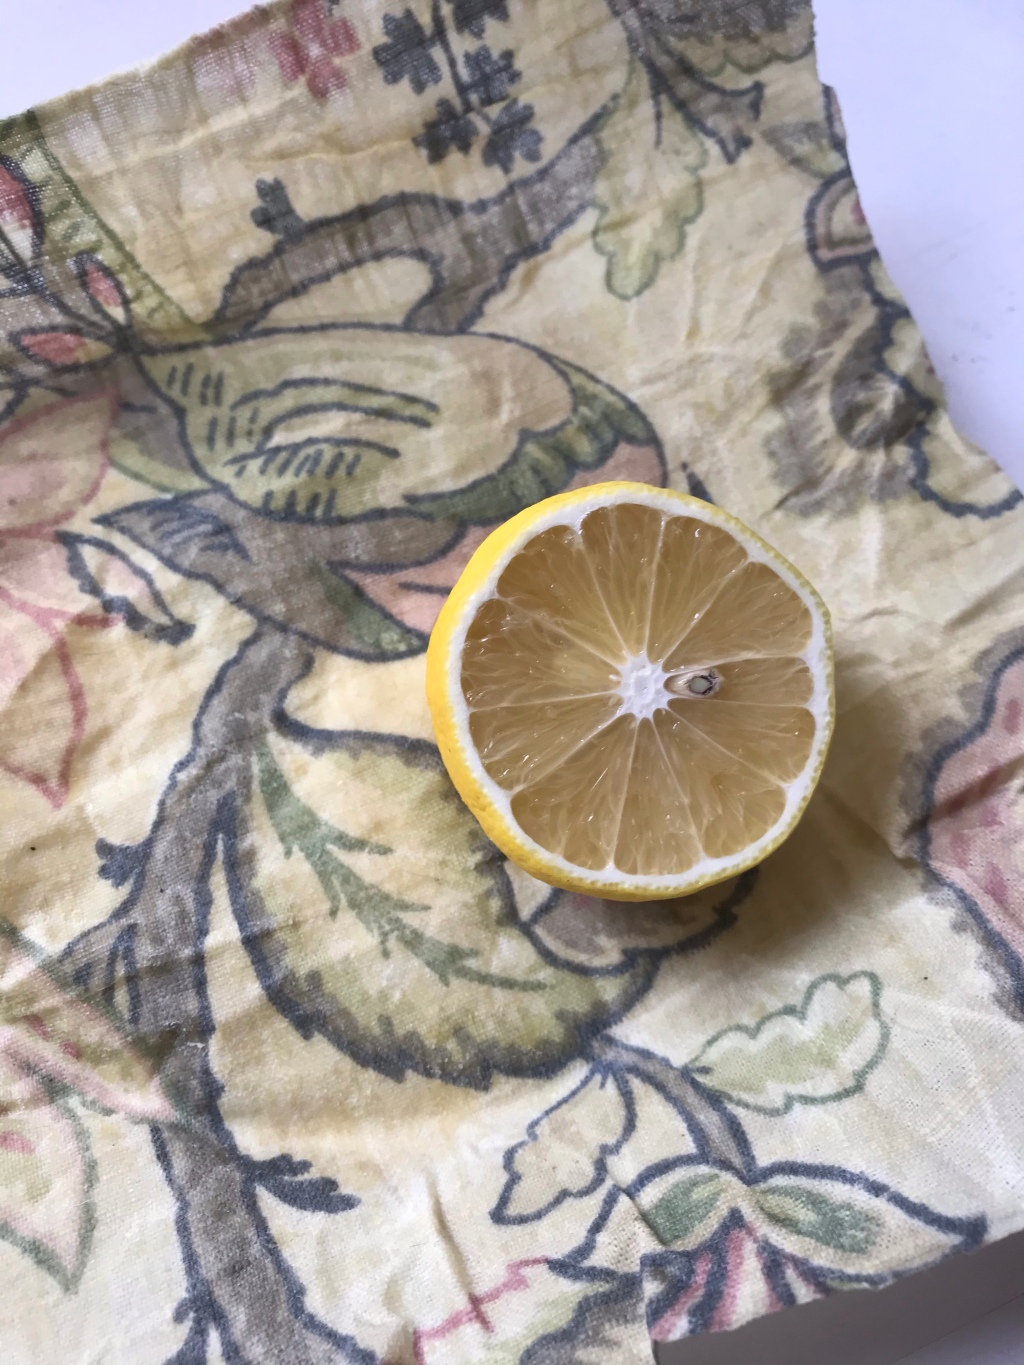 Cut lemon on top of beeswax wrap